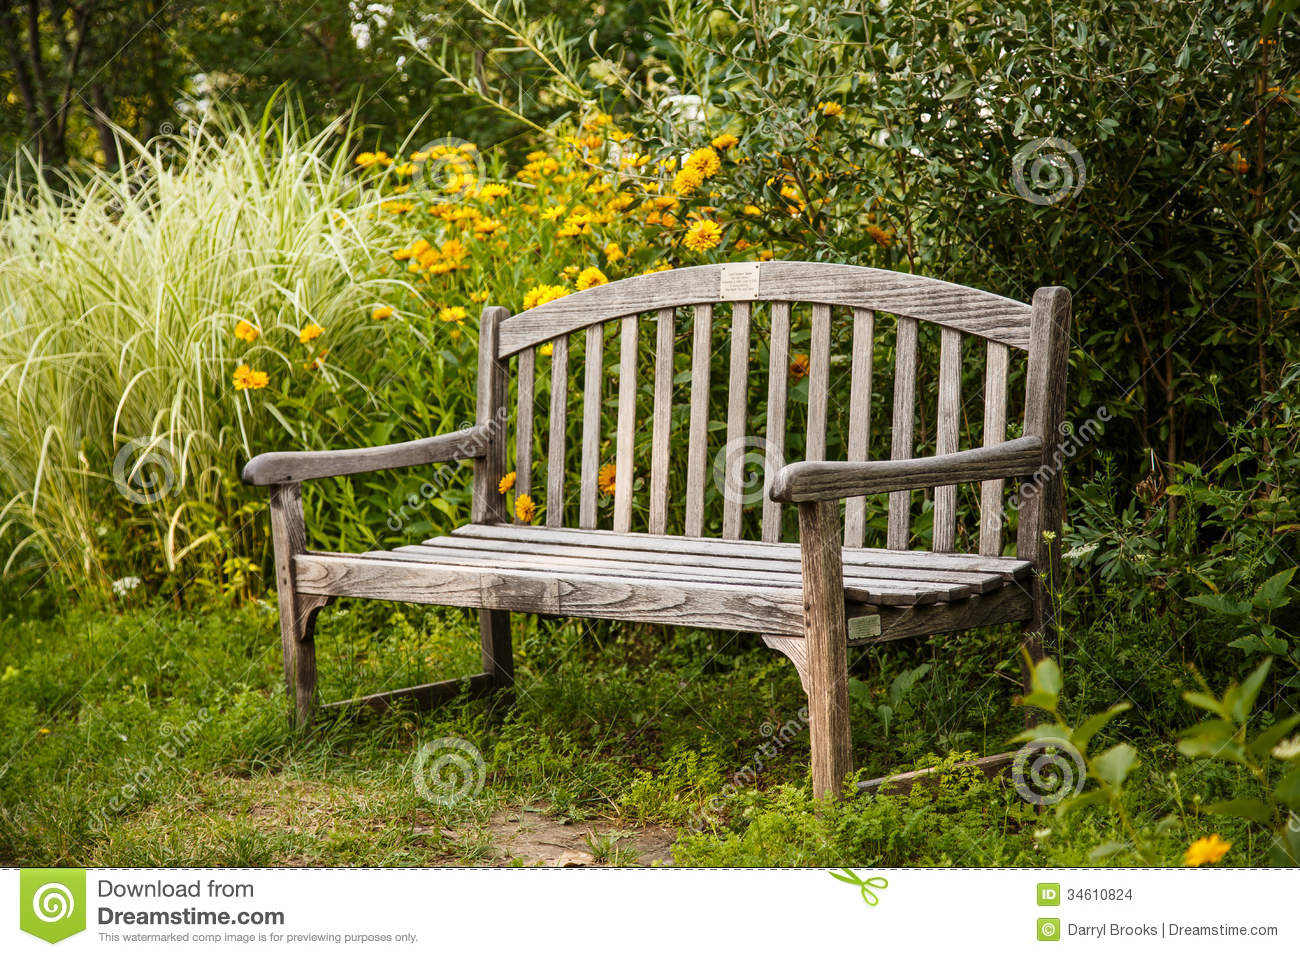 Old Wooden Bench In Garden Stock Images - Image: 34610824